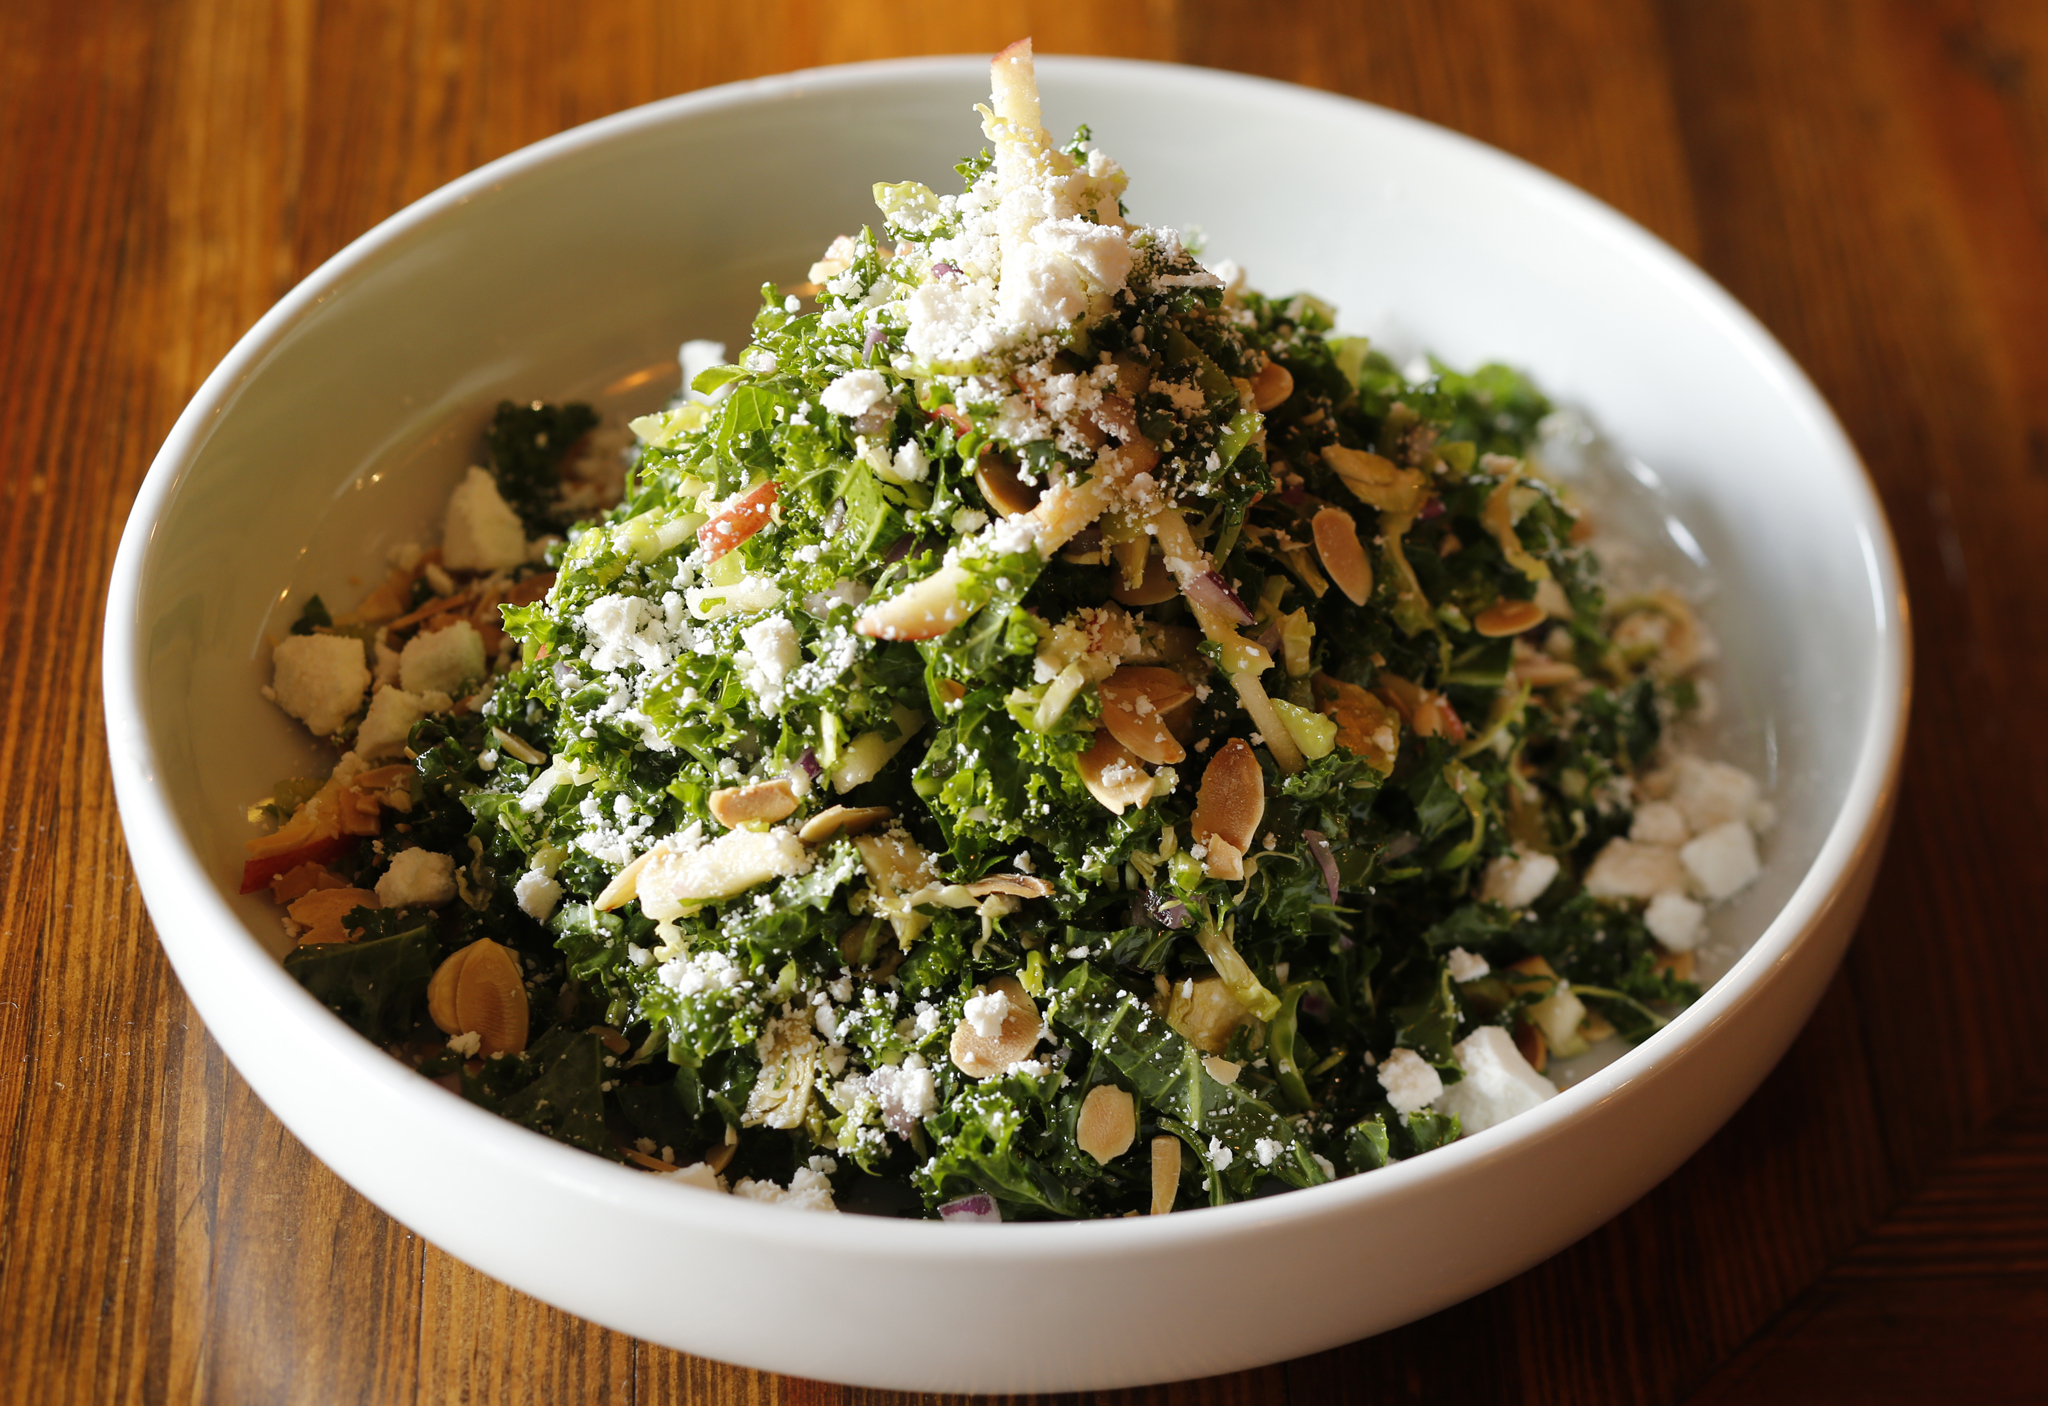 The Pomeroy's kale and brussel sprouts with toasted almonds, ricotta salata, apple, red onion.